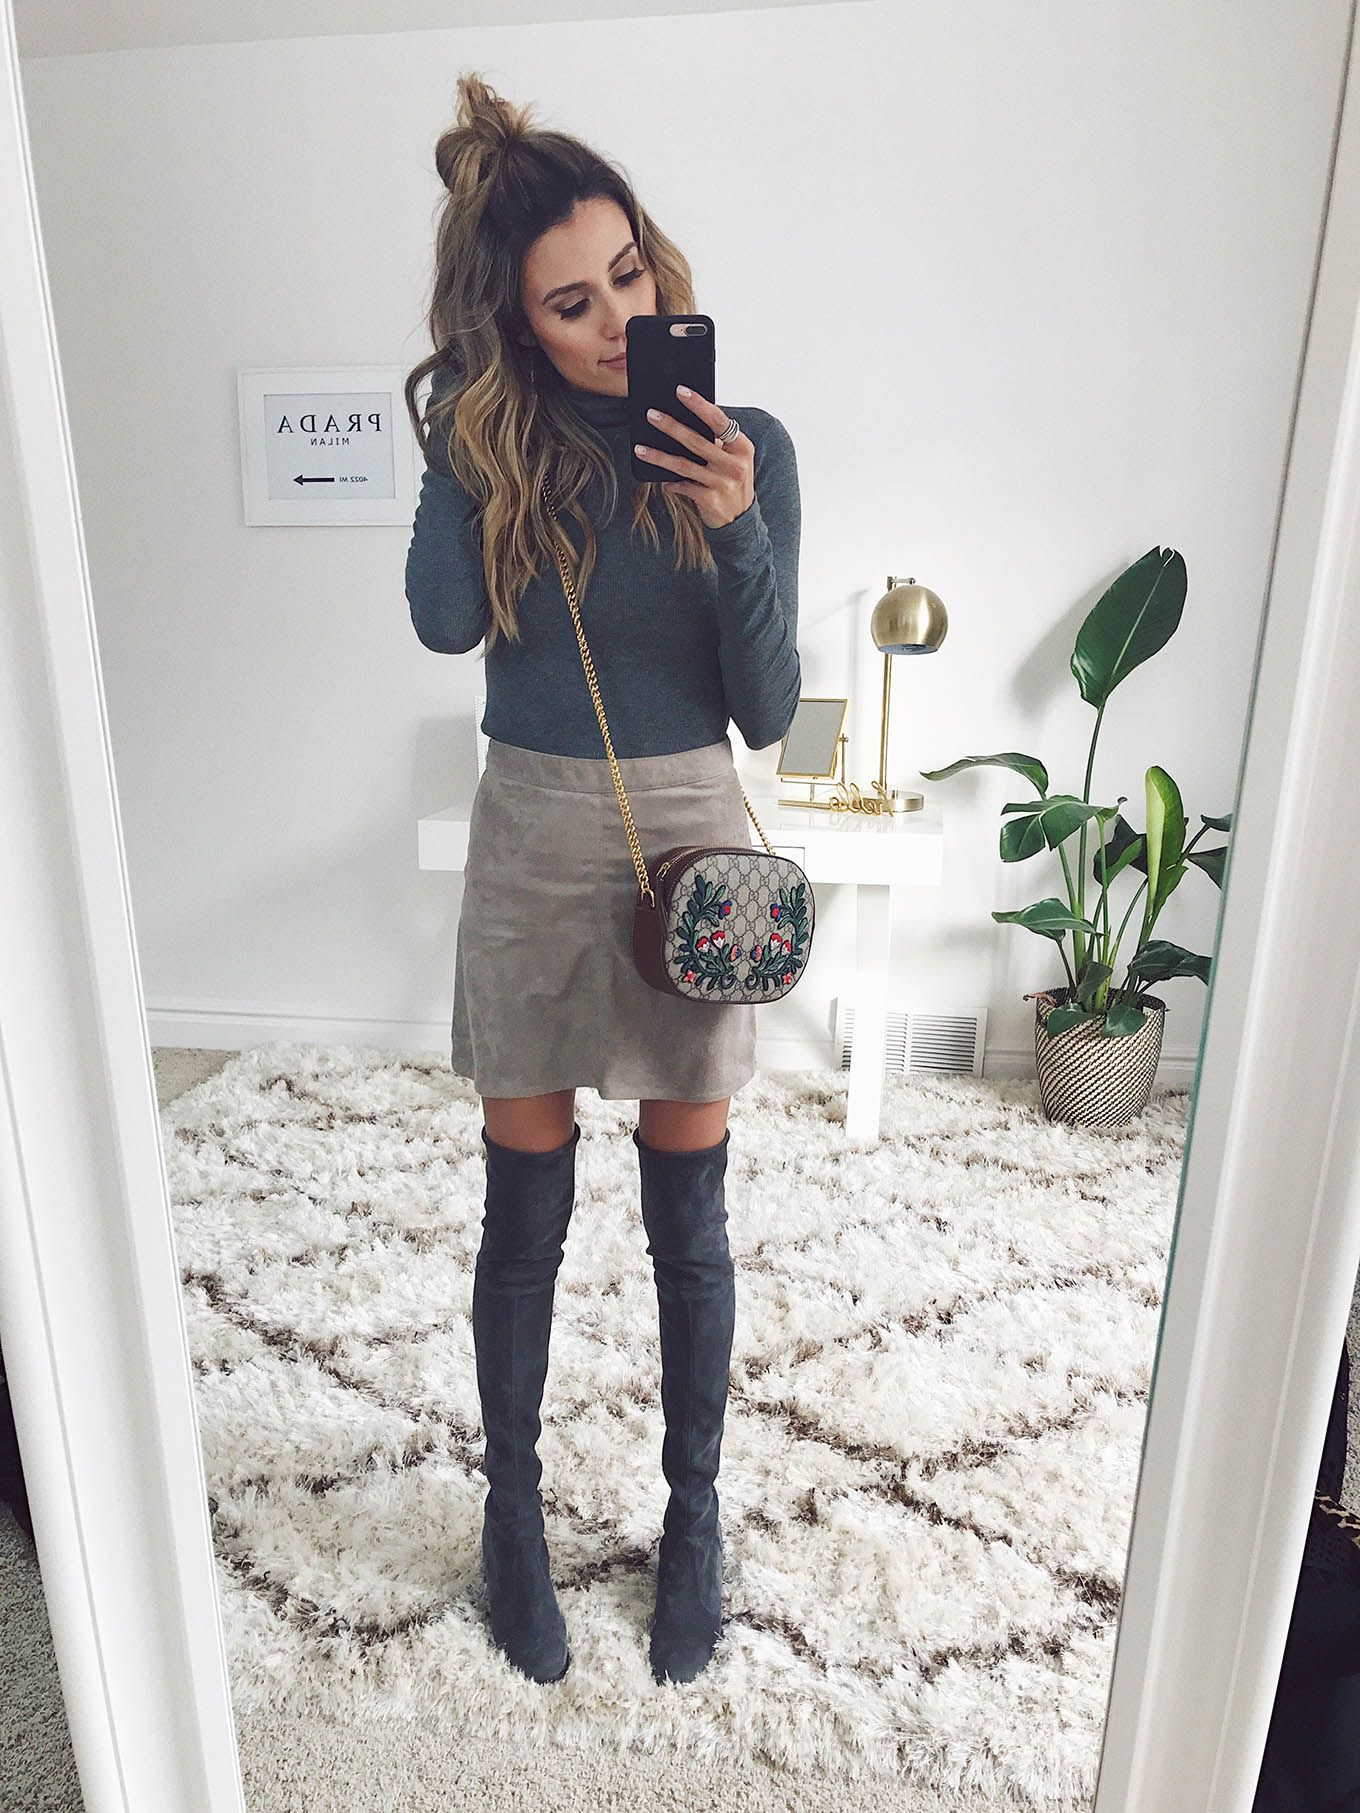 New Video: 7 Fresh Ways to Wear A Turtleneck   Hello Fashion. Grey turtleneck sweater+beige skirt+grey over the knee boots+embroidered chain crossbody bag. Winter Casual Outfit 2017